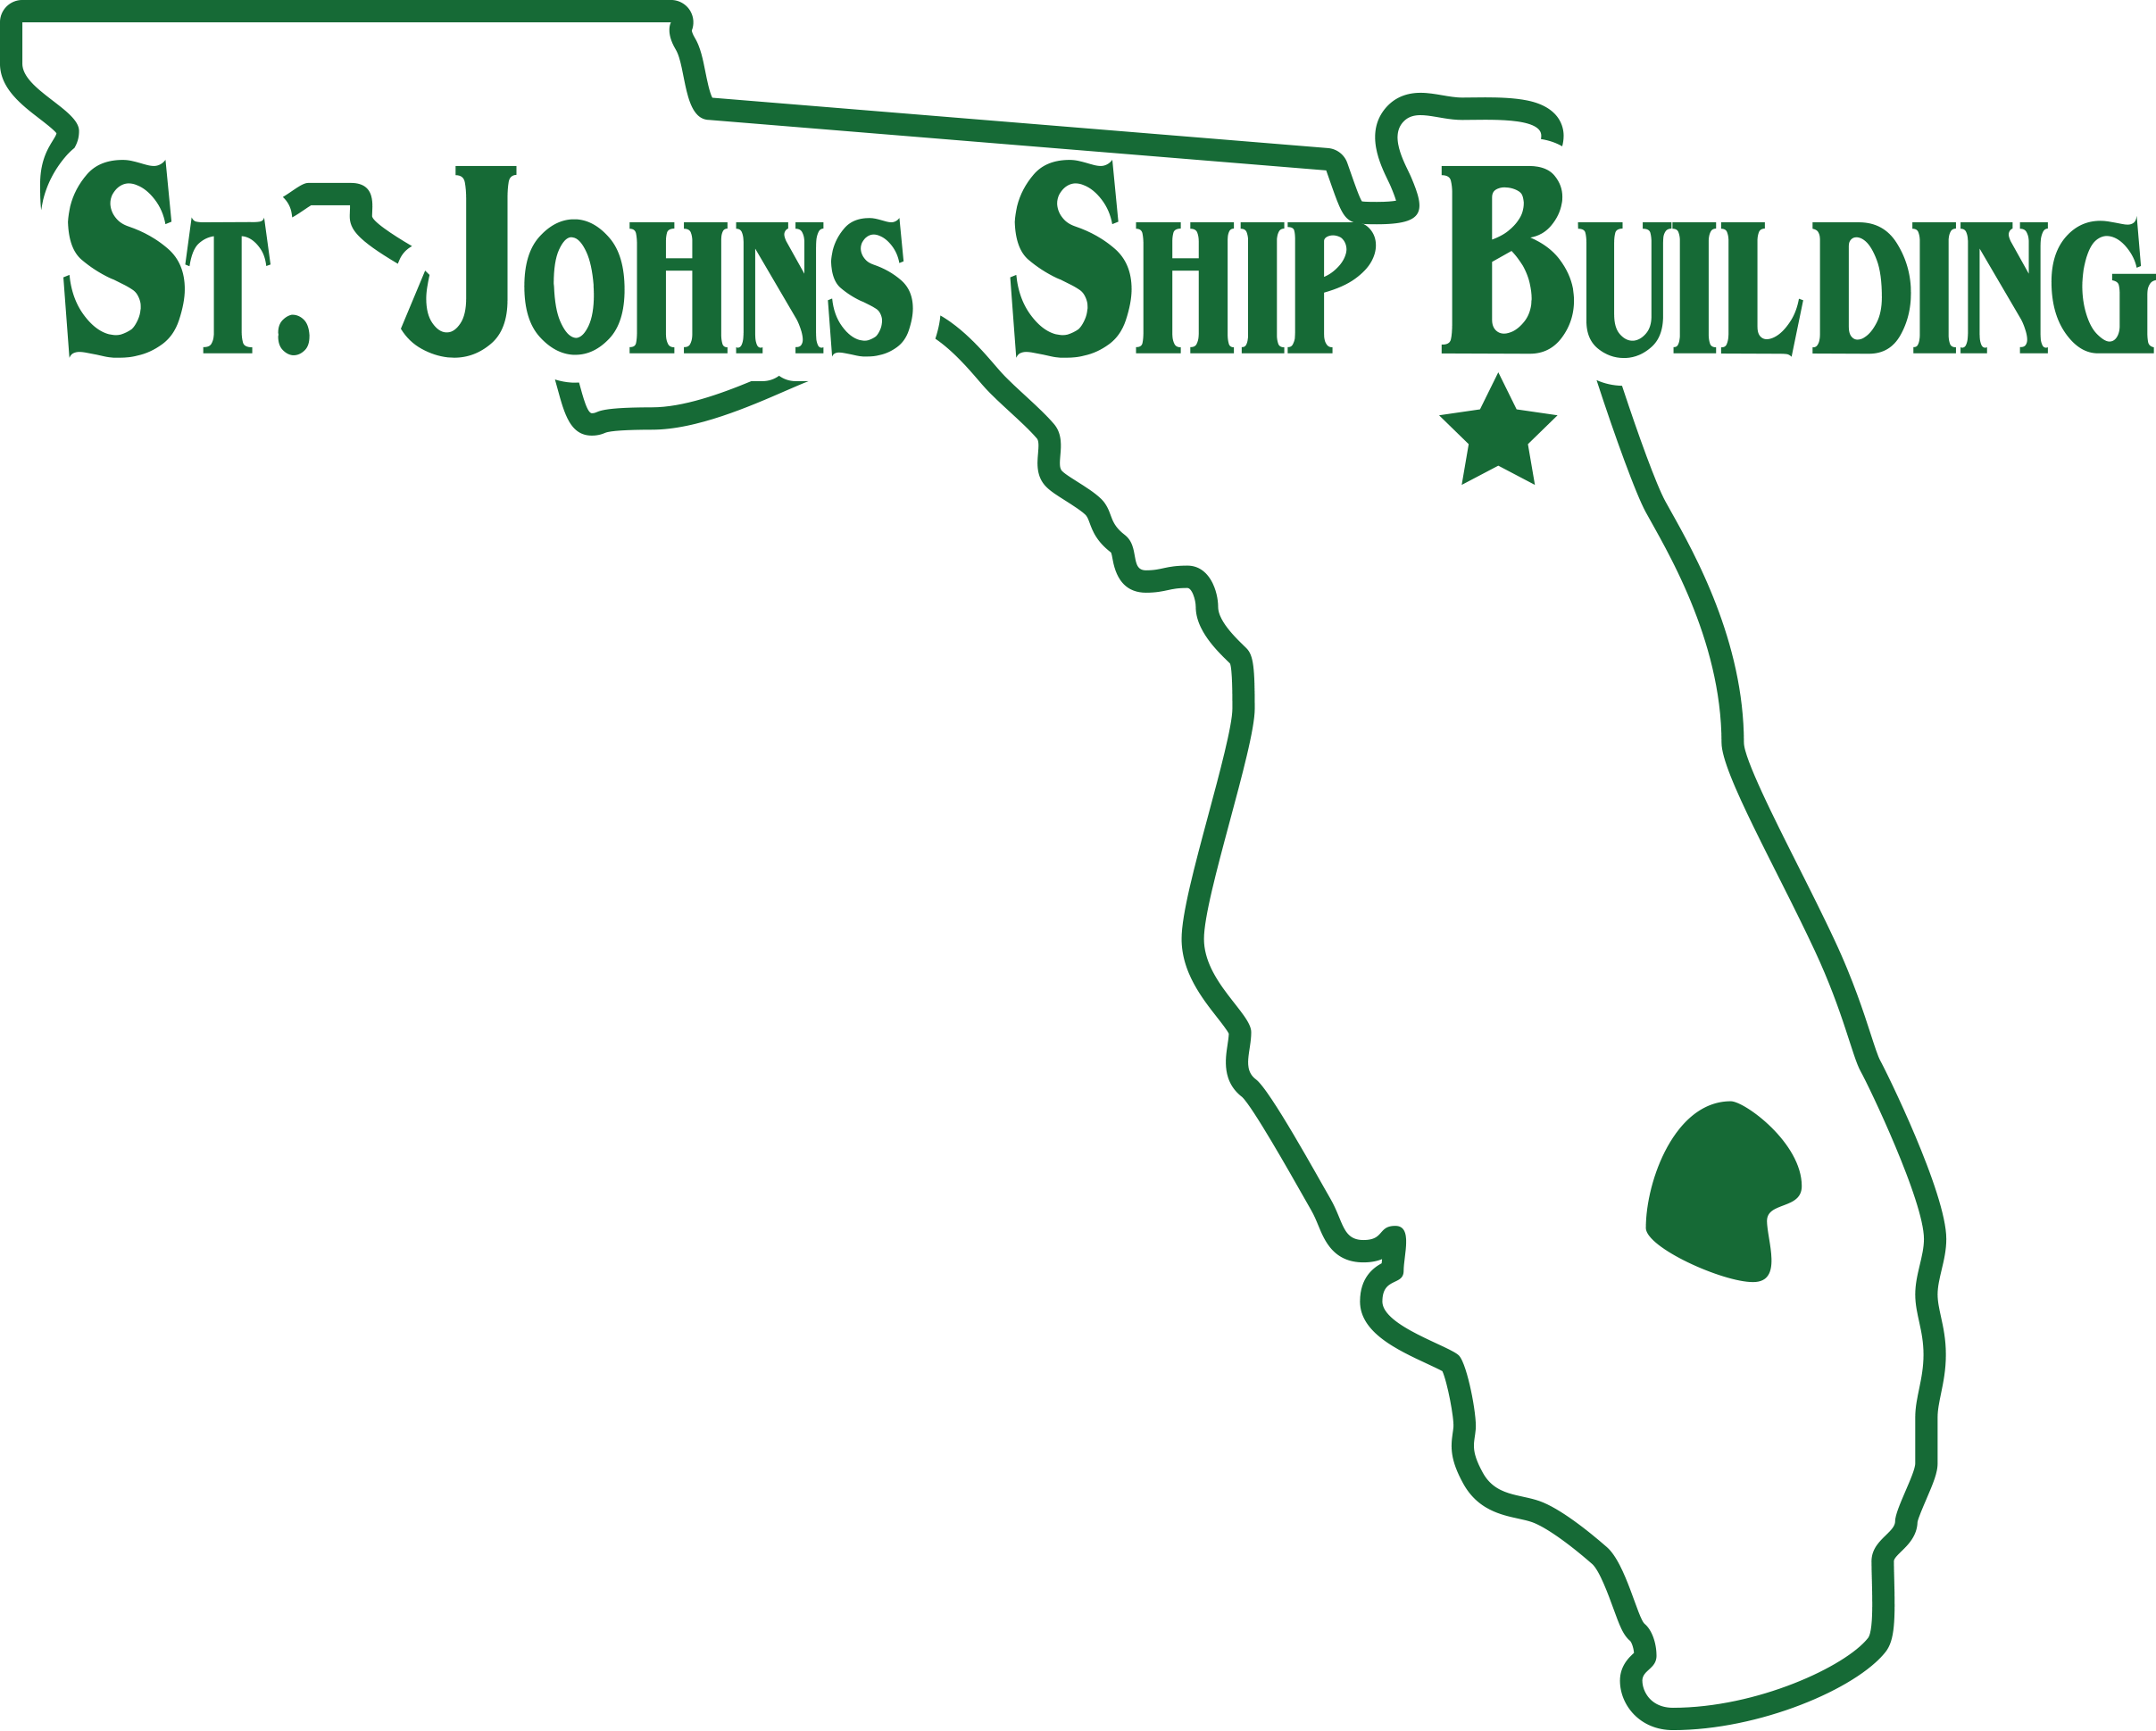 St. John's Ship Buildinglogo